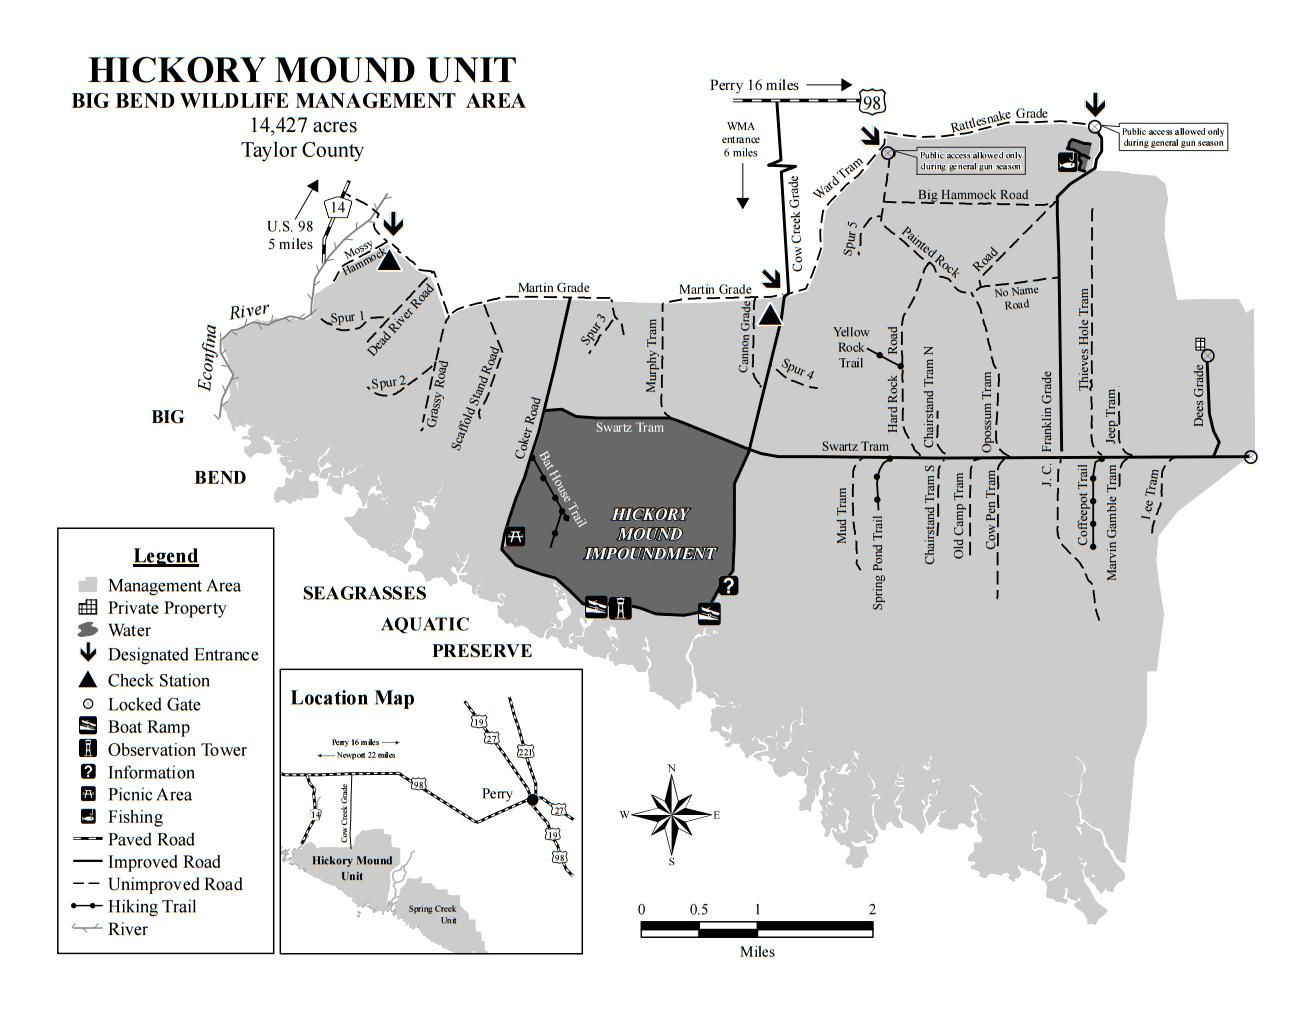 Hickory Mound Unit - Big Bend Wildlife Management Area ...